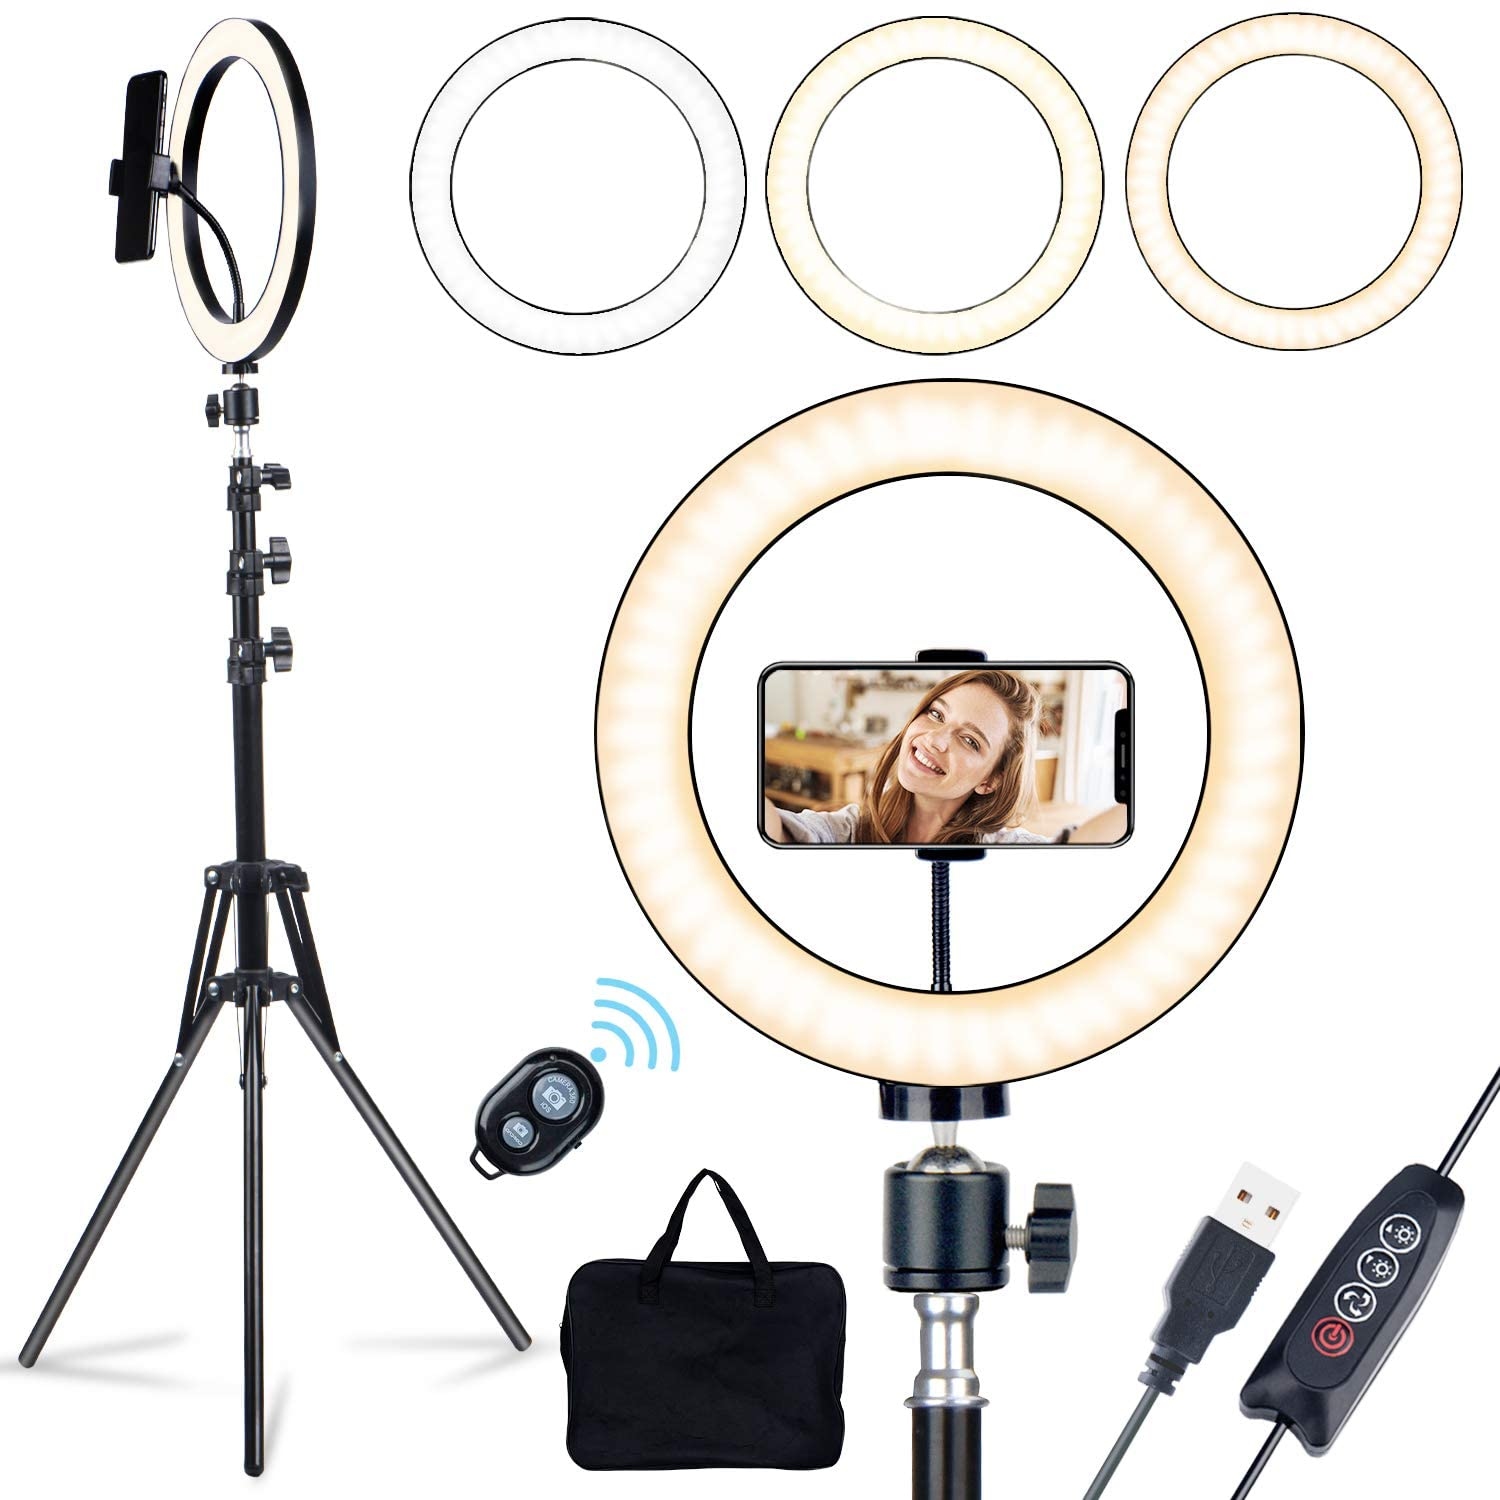 LED Selfie Ring Light with 63'' Tripod Stand & Phone Holder, 10'' Dimmable RingLight Kit USB Lamp for Live Stream/Makeup/YouTube Video/Lighting/Beauty -Carrying Bag, Metal Body and Brighter LED Chips